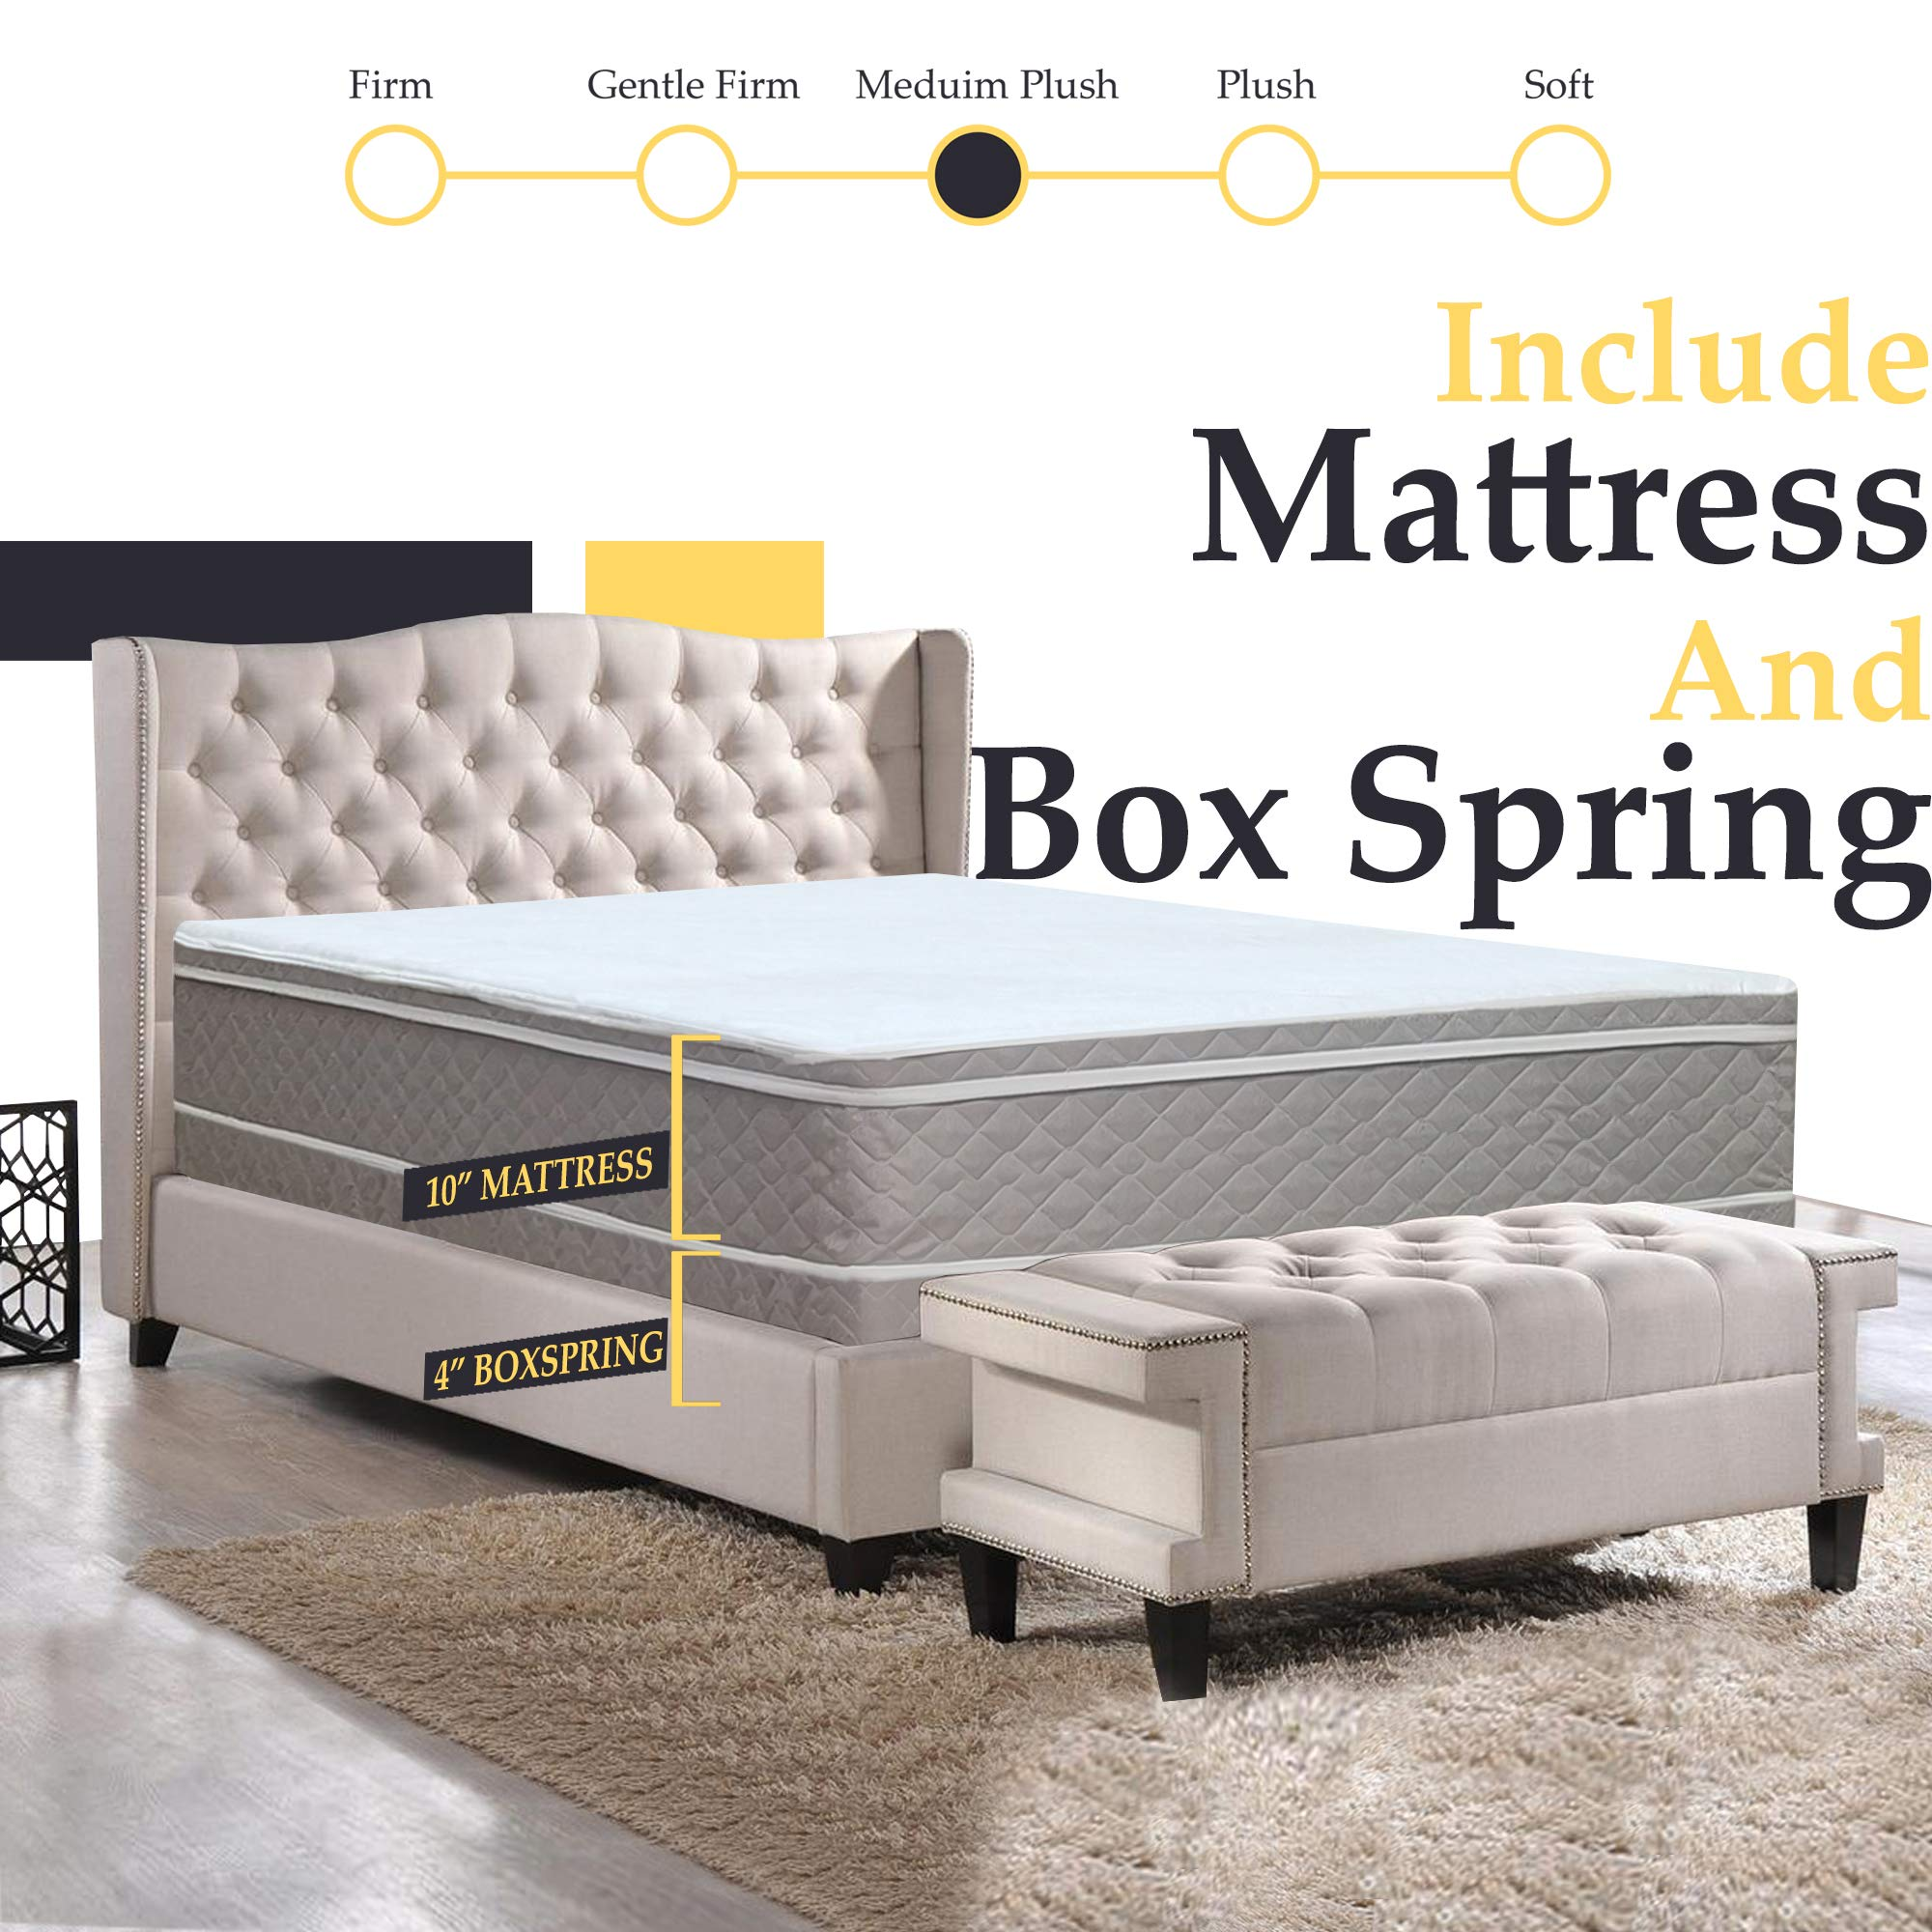 10-Inch Medium Plush Eurotop Pillowtop Innerspring Mattress And 4-Inch Fully Assembled Wood Boxspring /Foundation Set, by Nutan